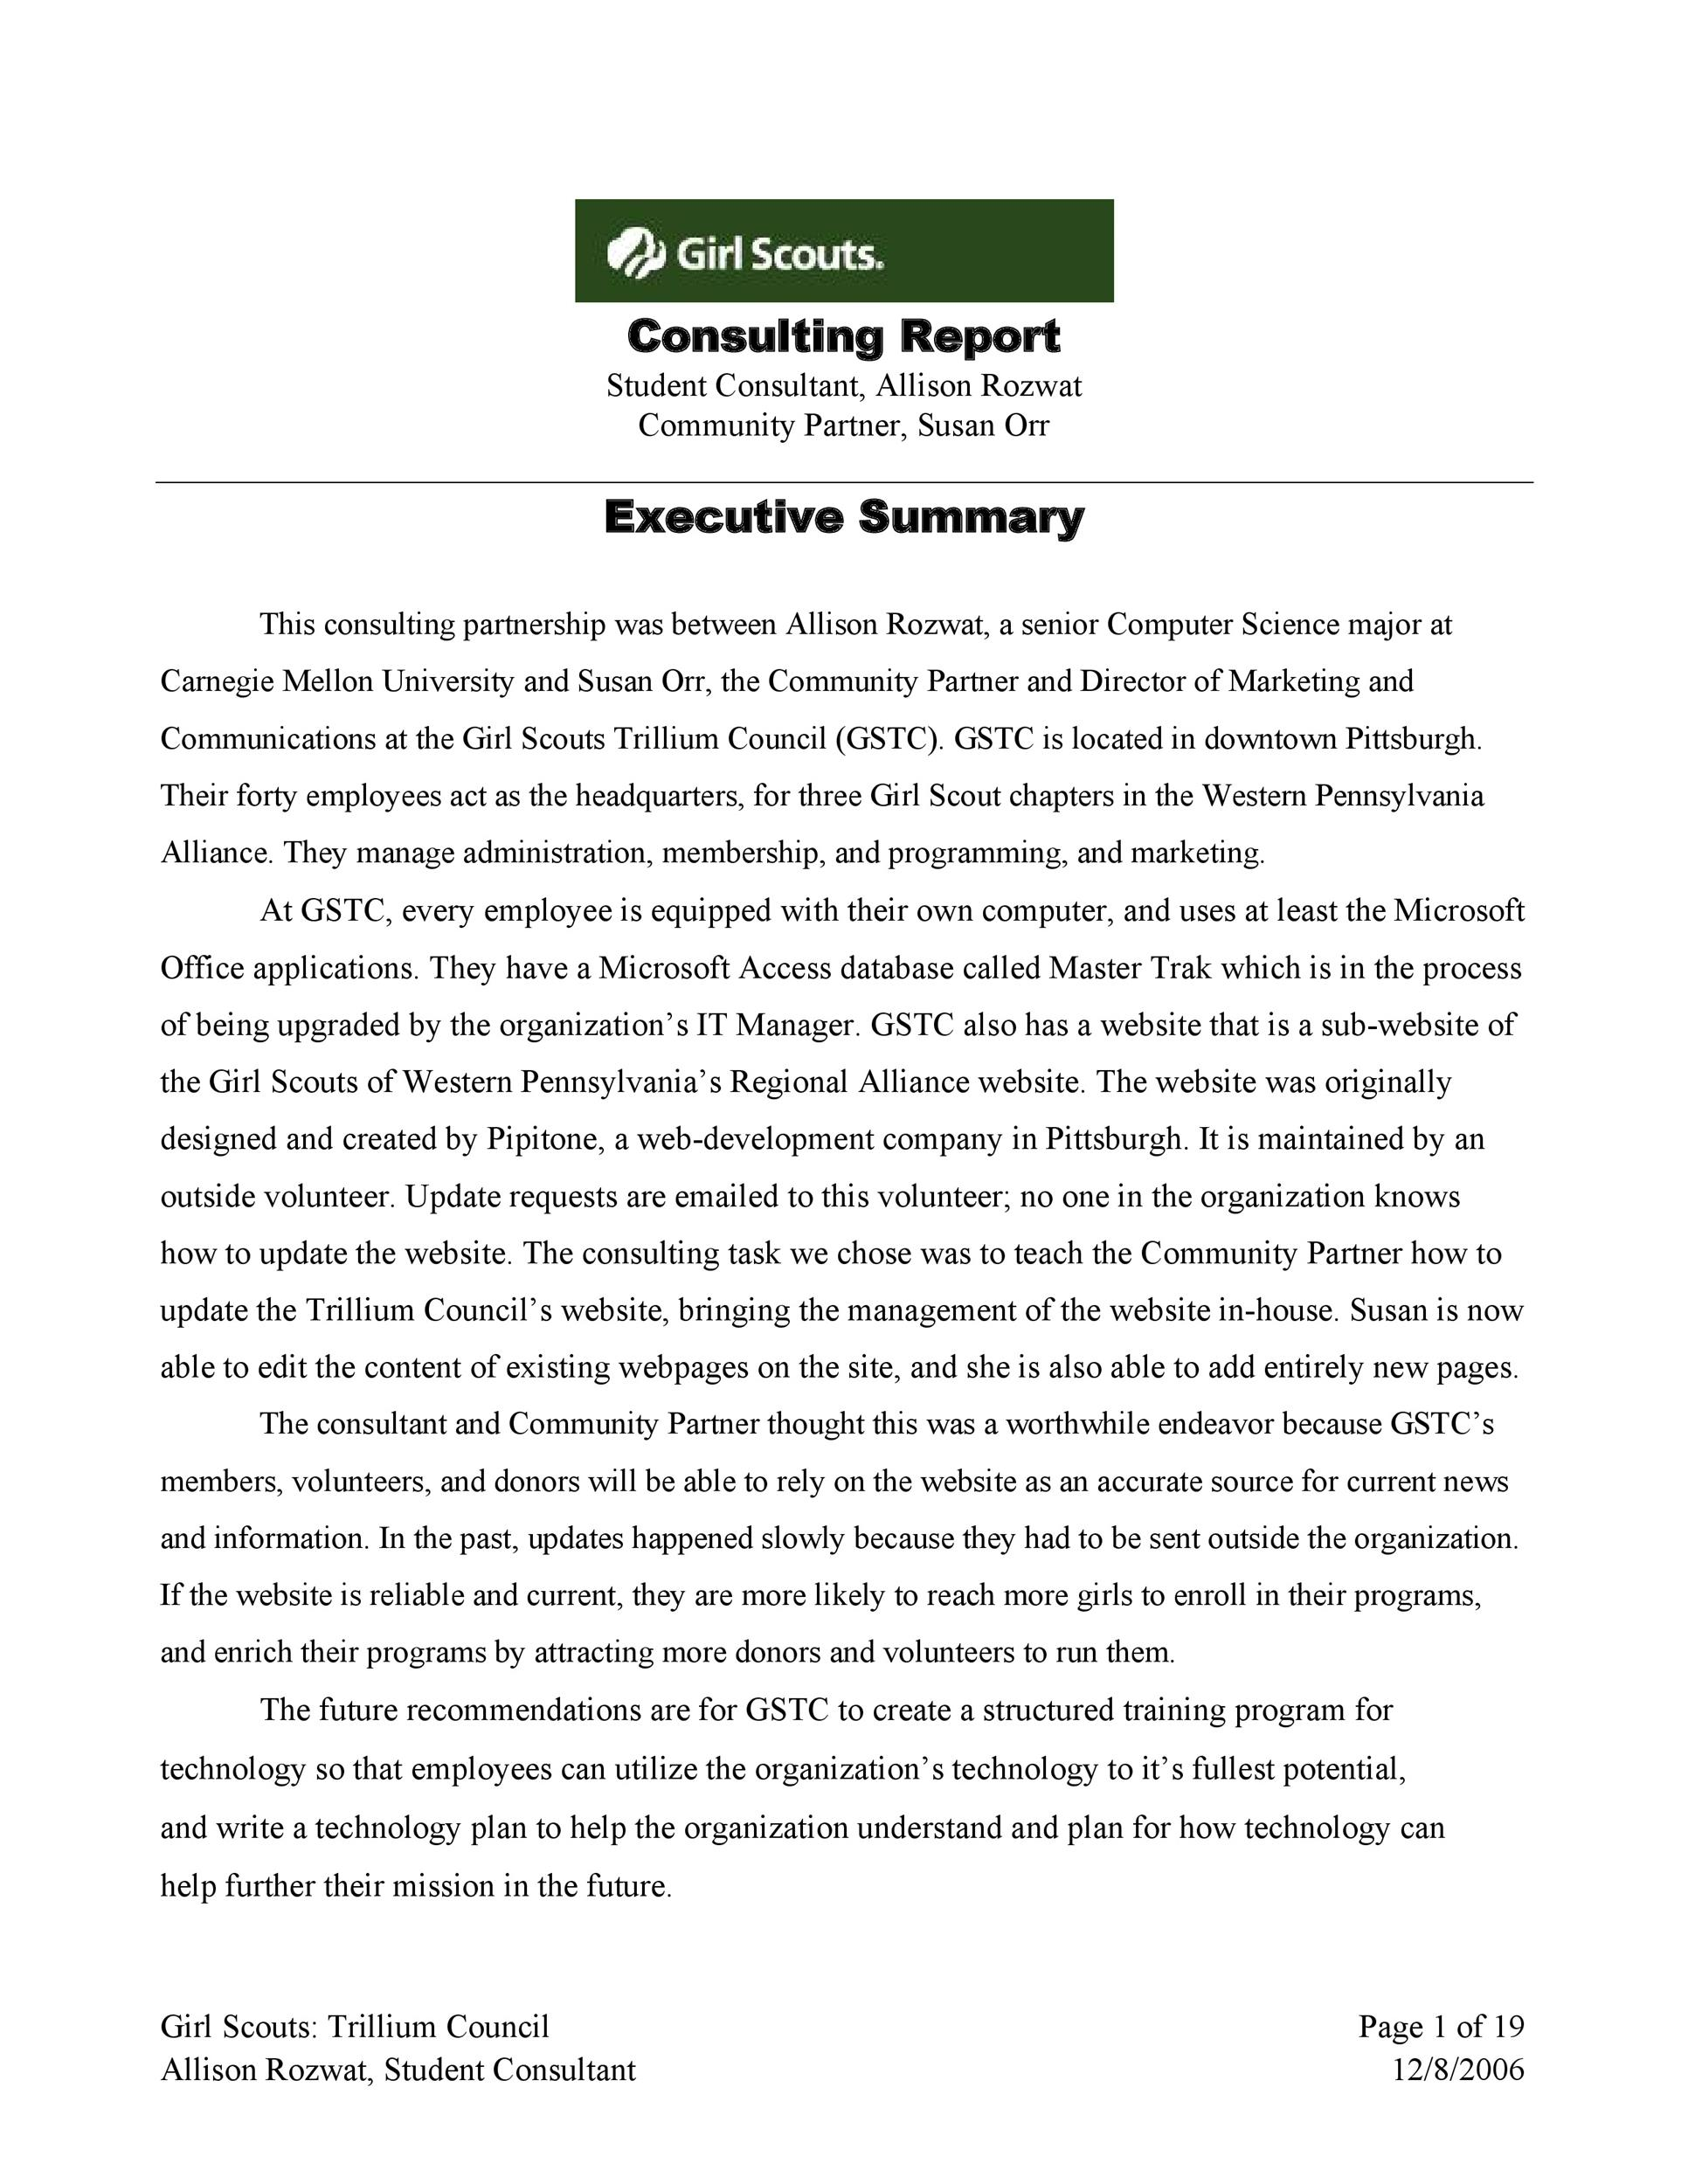 Free consulting report template 34